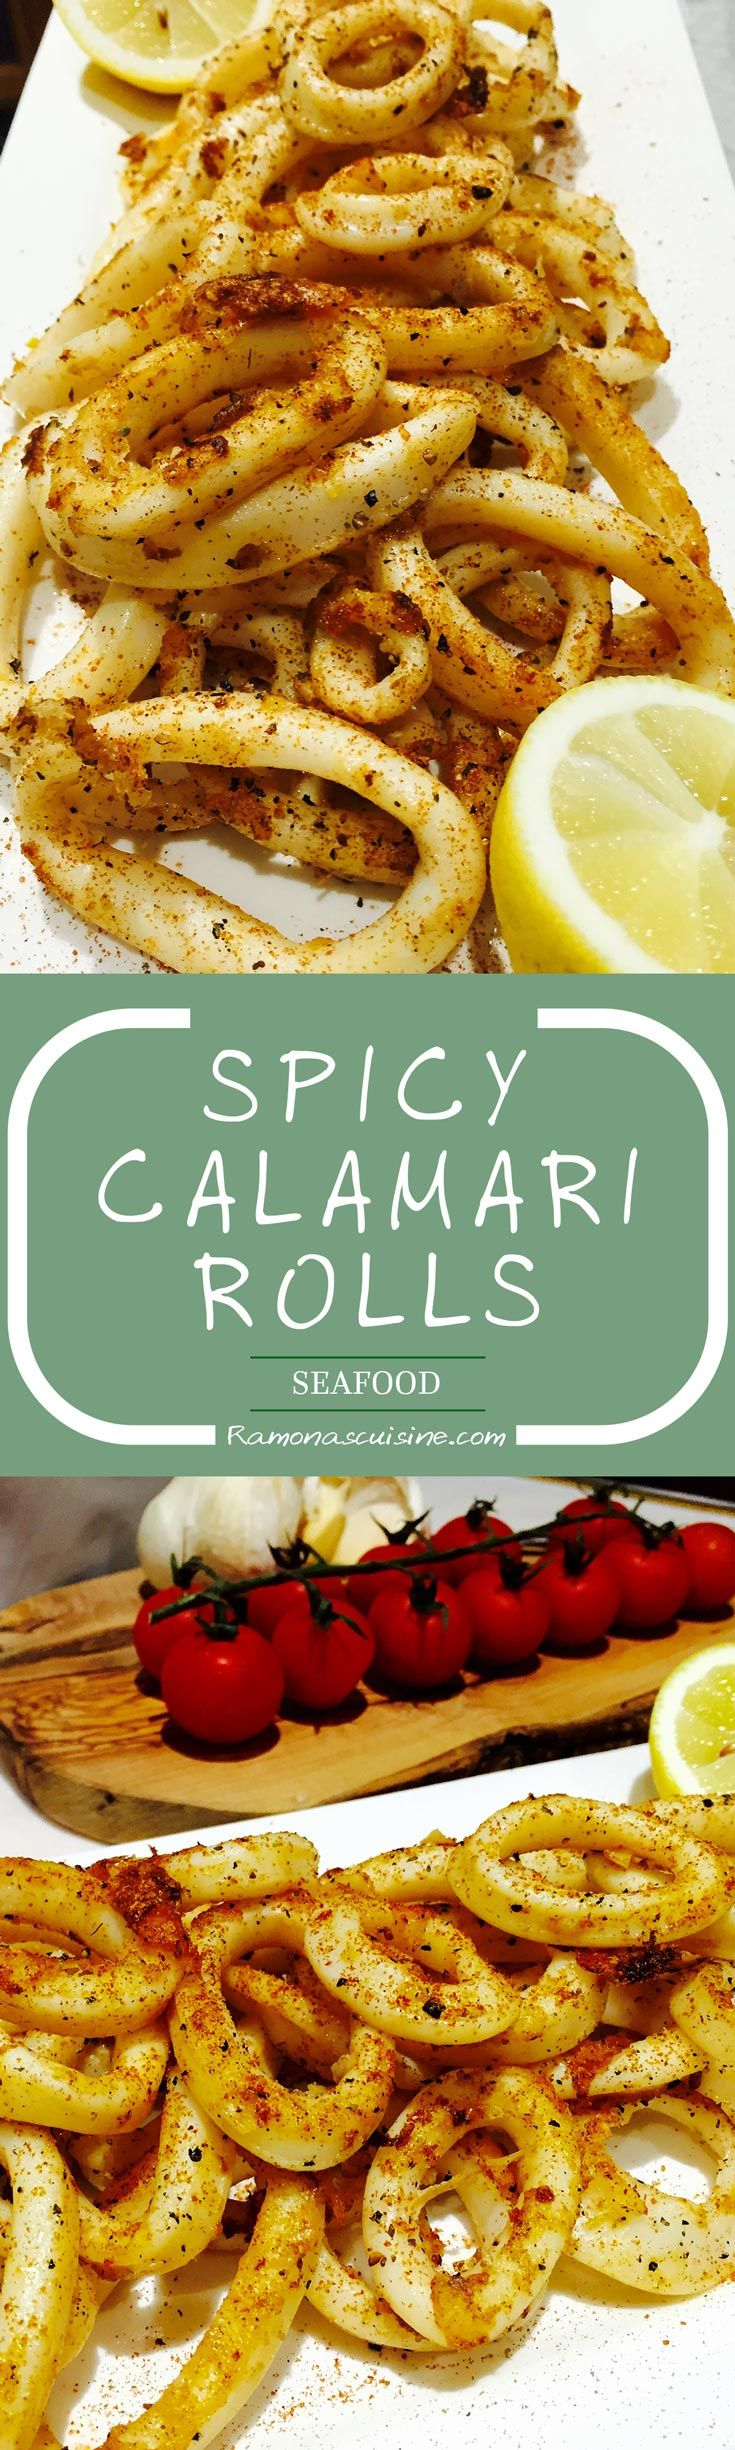 Tried it. Disgusting. ---->This calamari rolls appetizer is an easy to prepare, healthy starter dish, rich in vitamins, minerals and omega 3 oils.